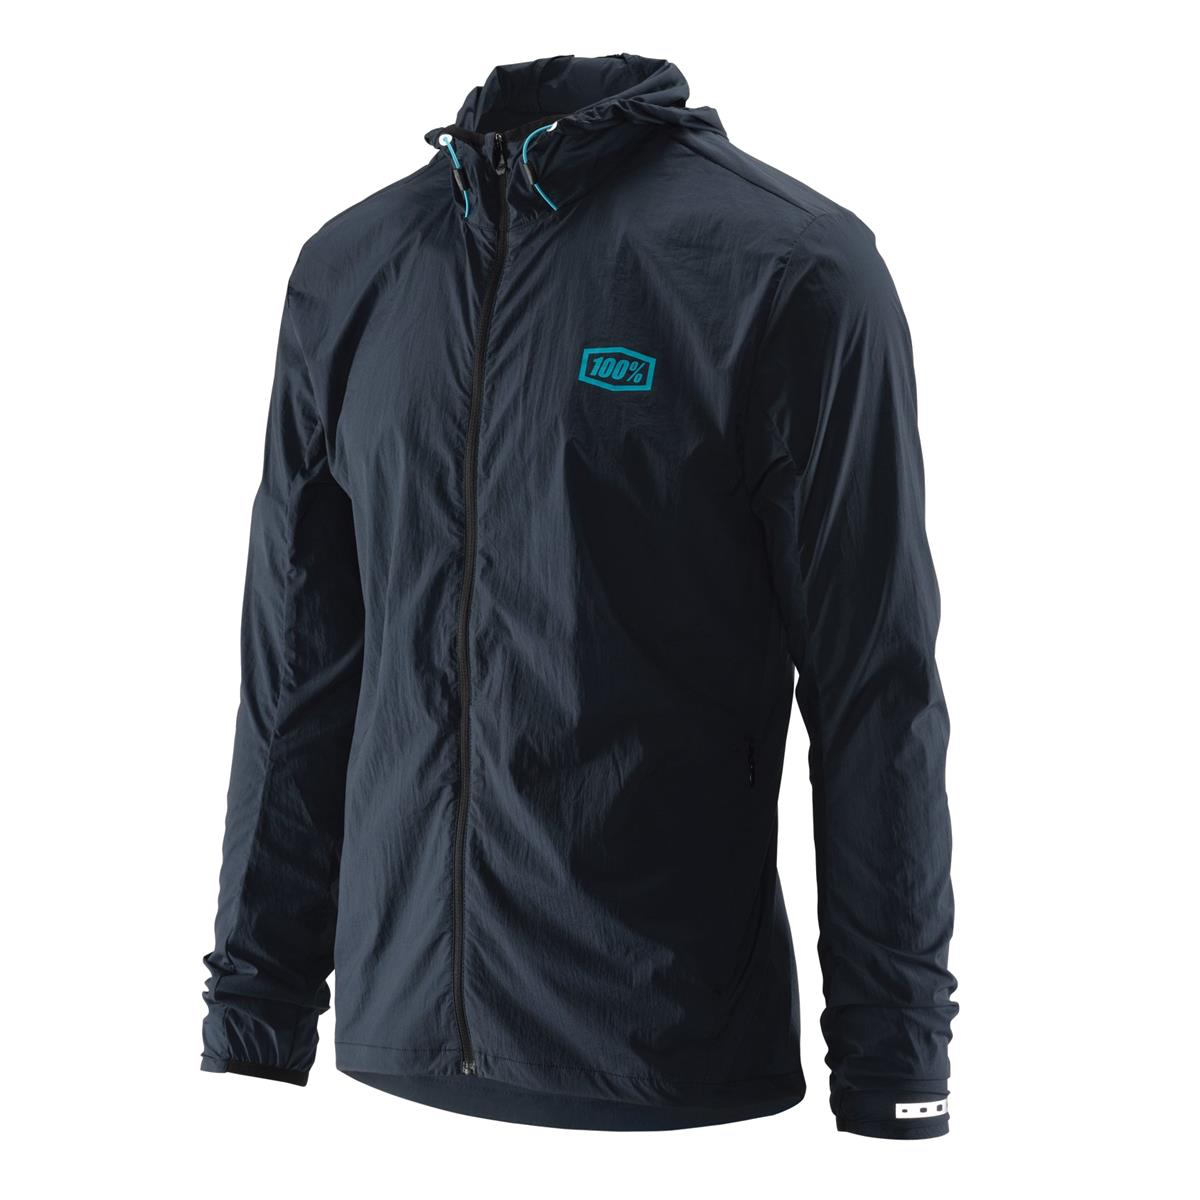 100% Windbreaker Aero Tech Charcoal